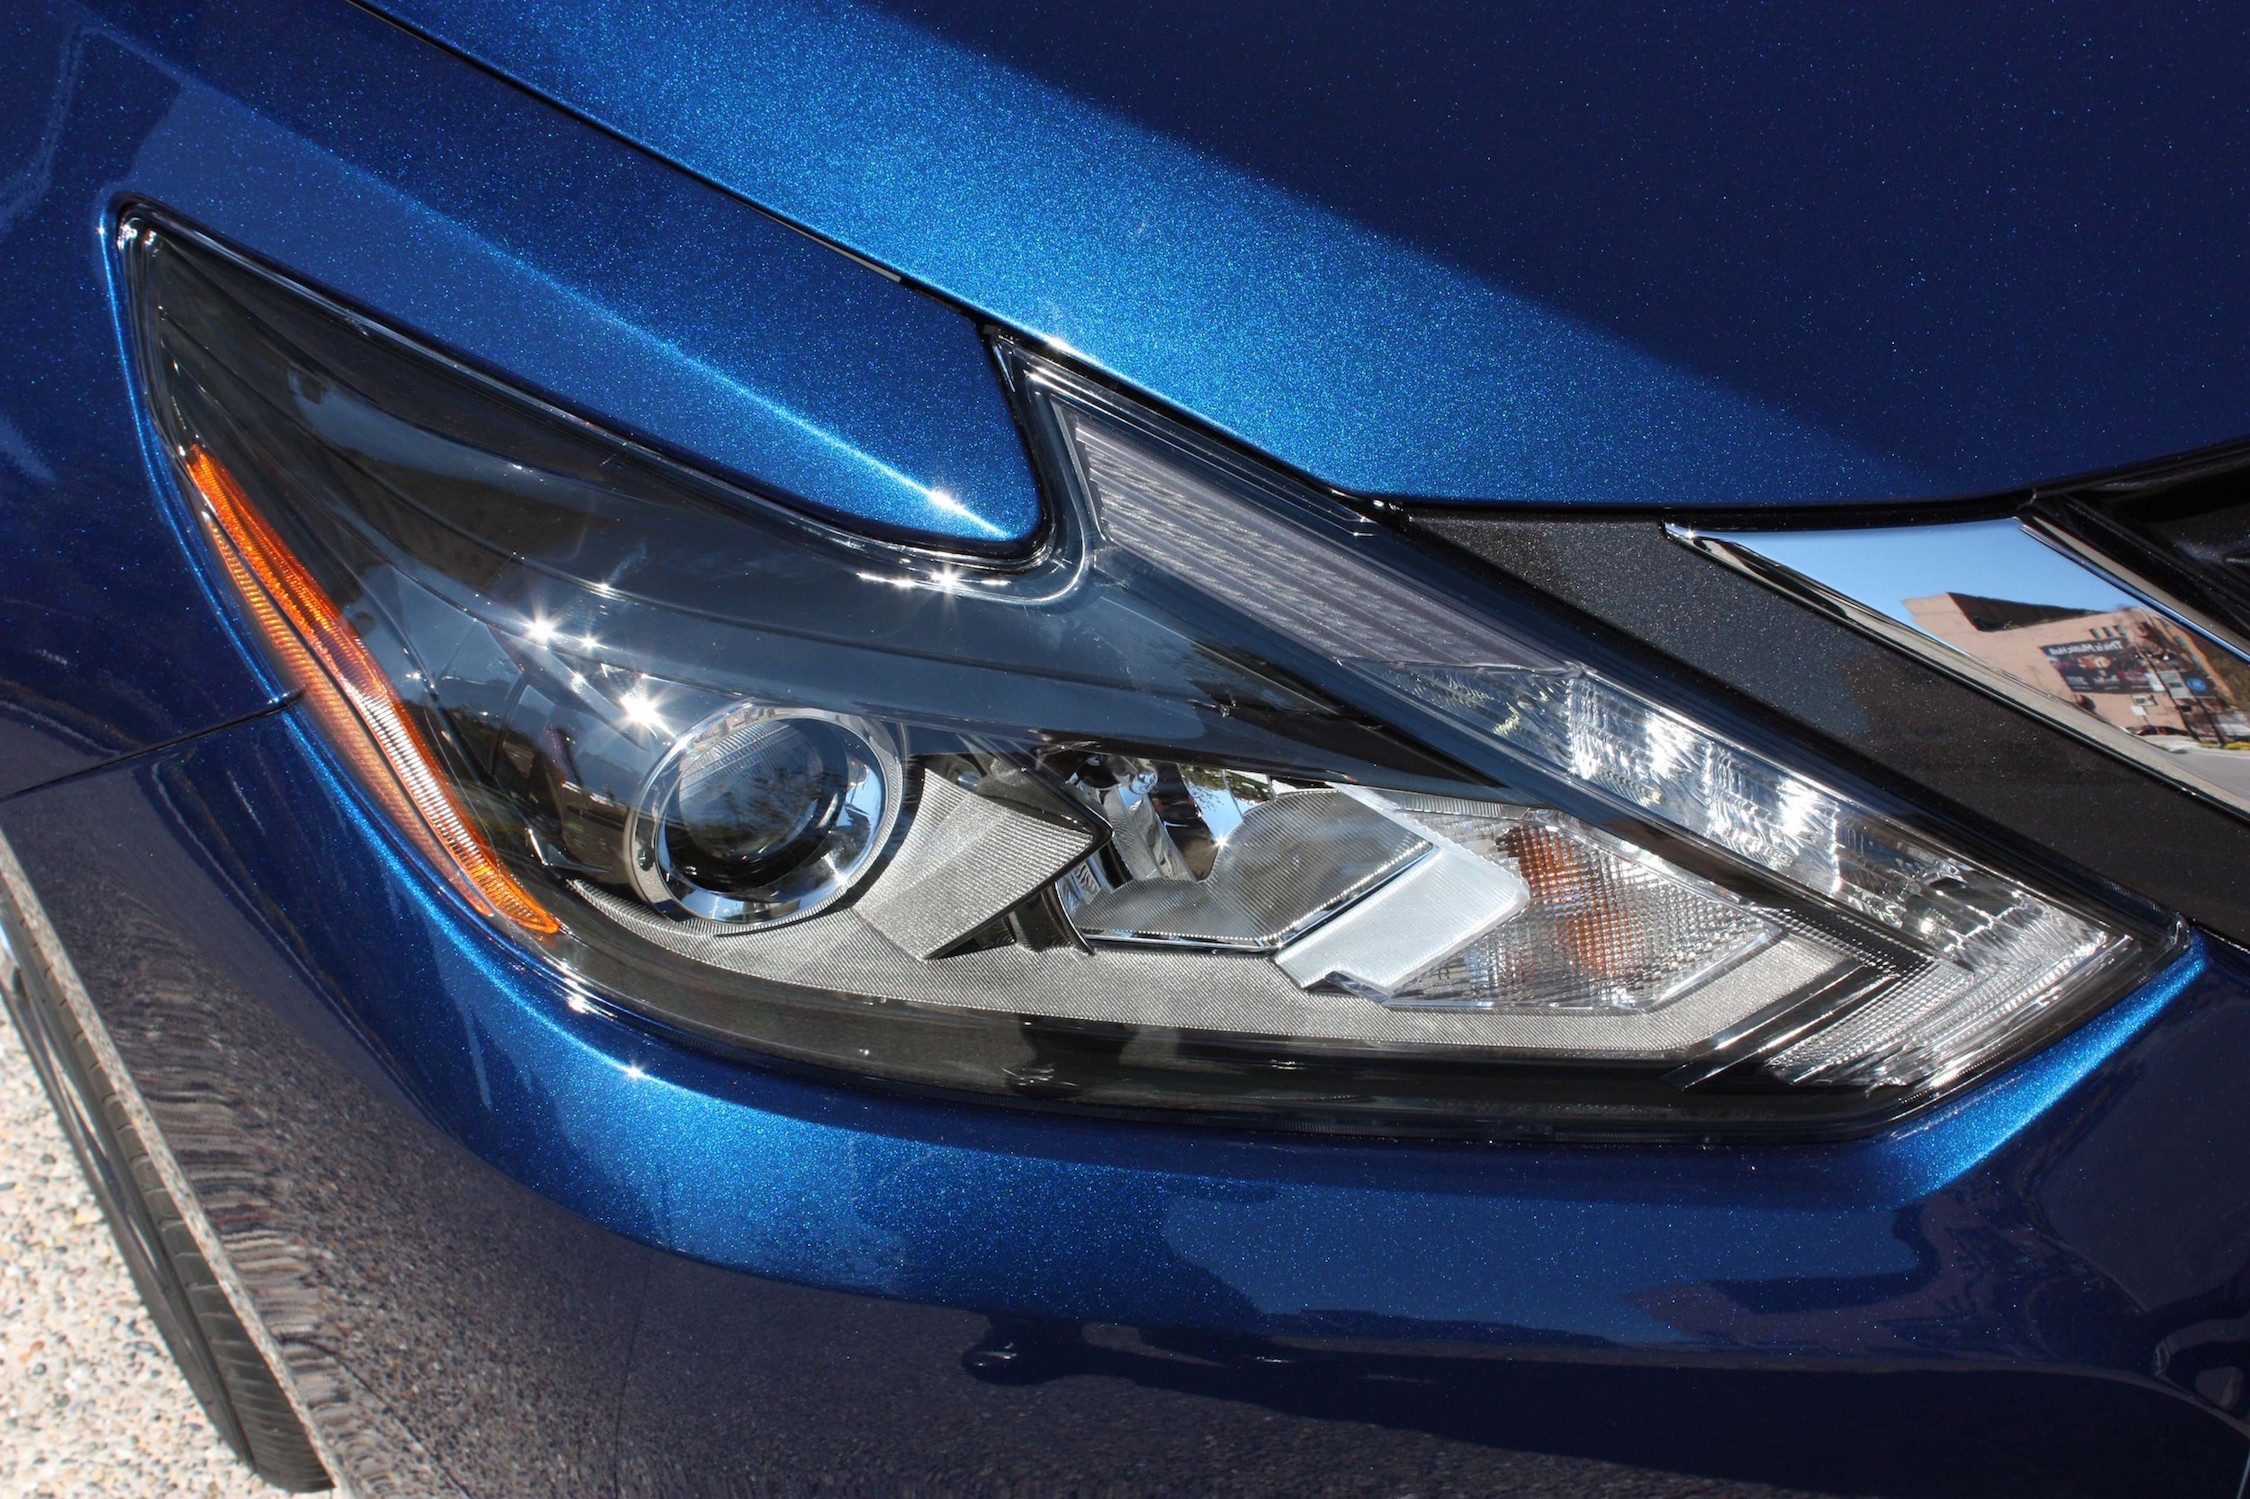 2016 Nissan Altima Exterior Headlight (Photo 16 of 20)